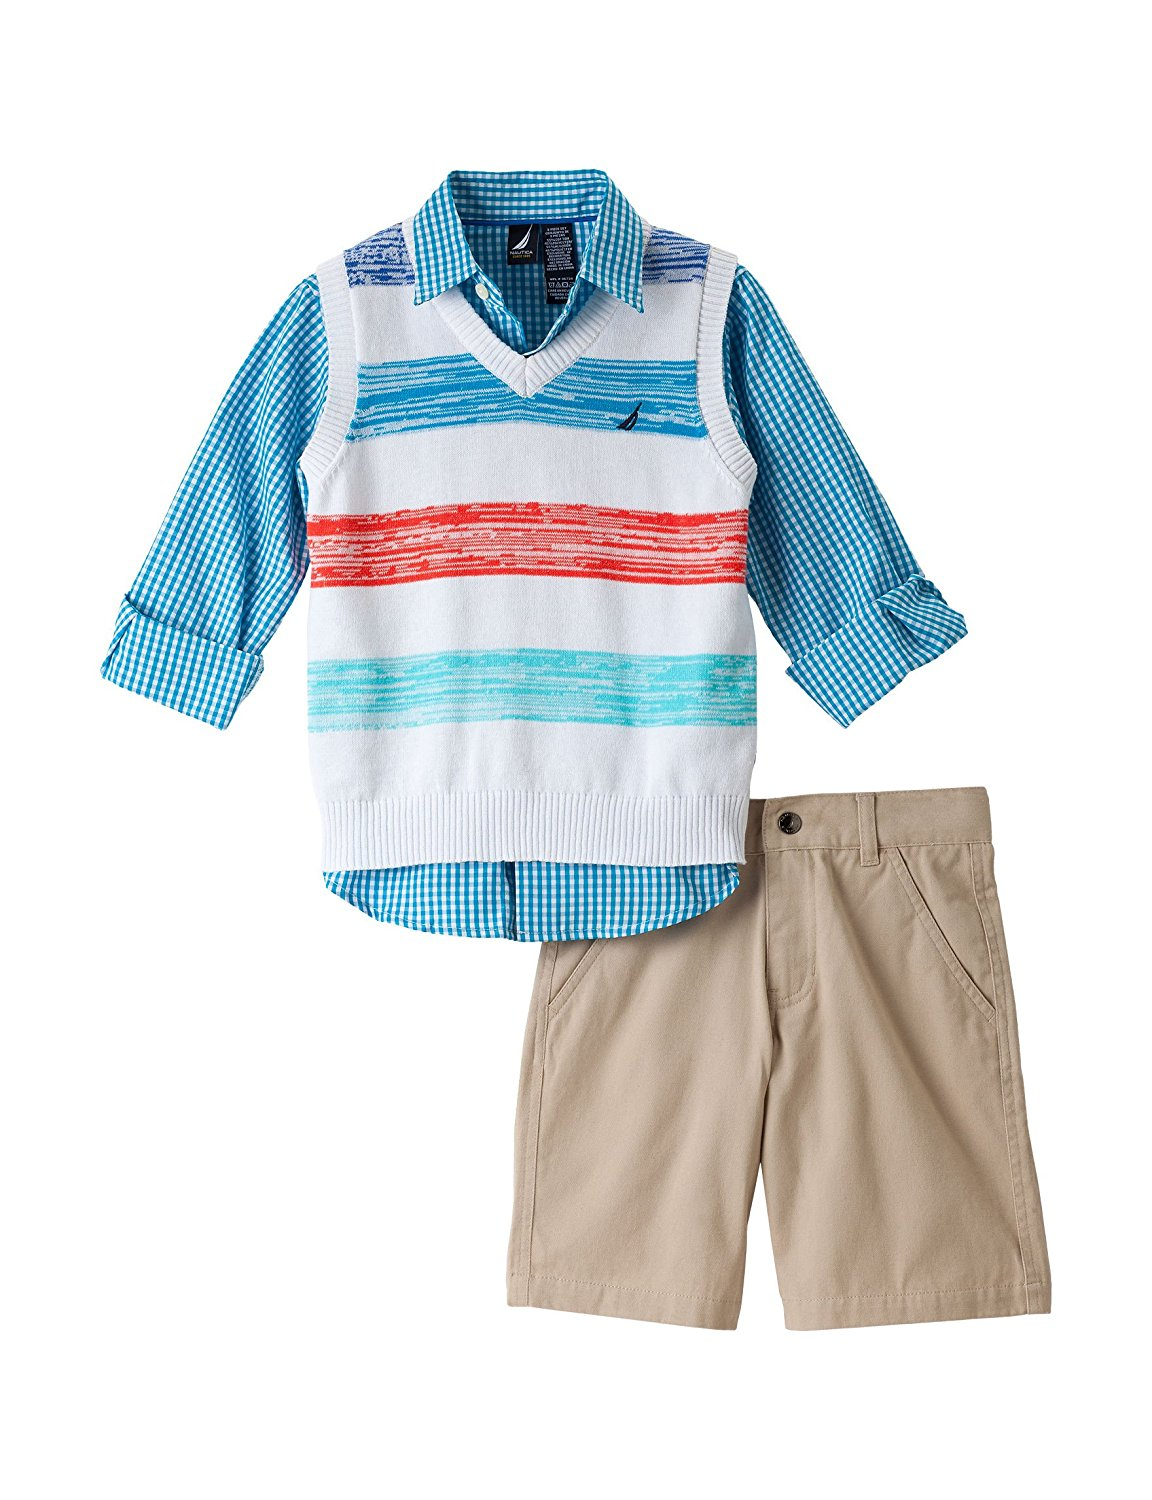 bdfd0e136 Get Quotations · Nautica Toddler Boy's 3pc Brushstroke Sweater Vest/ Short  Set, White